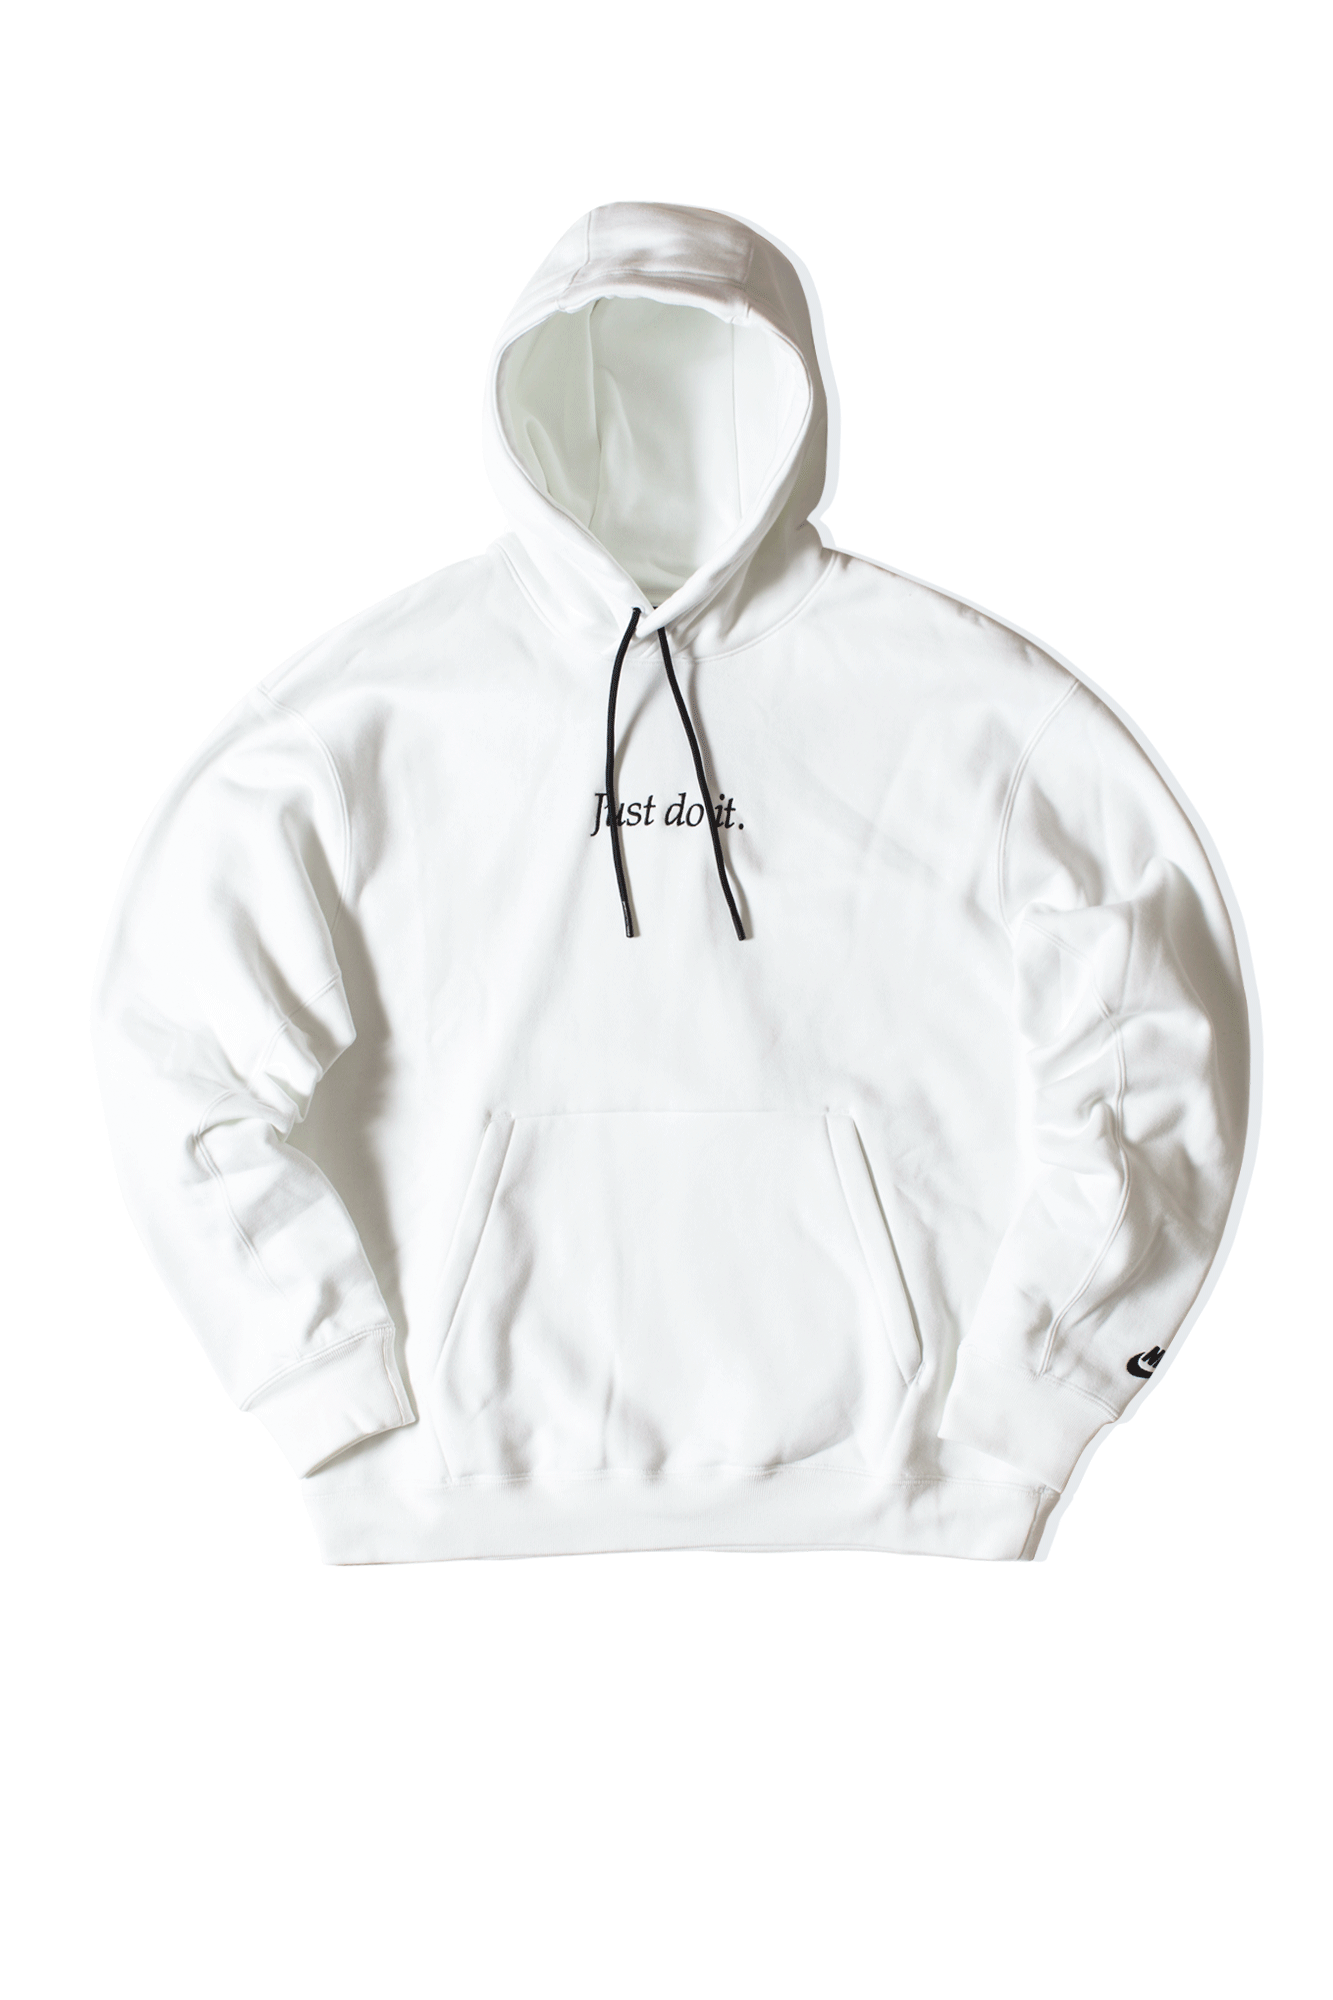 Just Do It Fleece Hoodie White